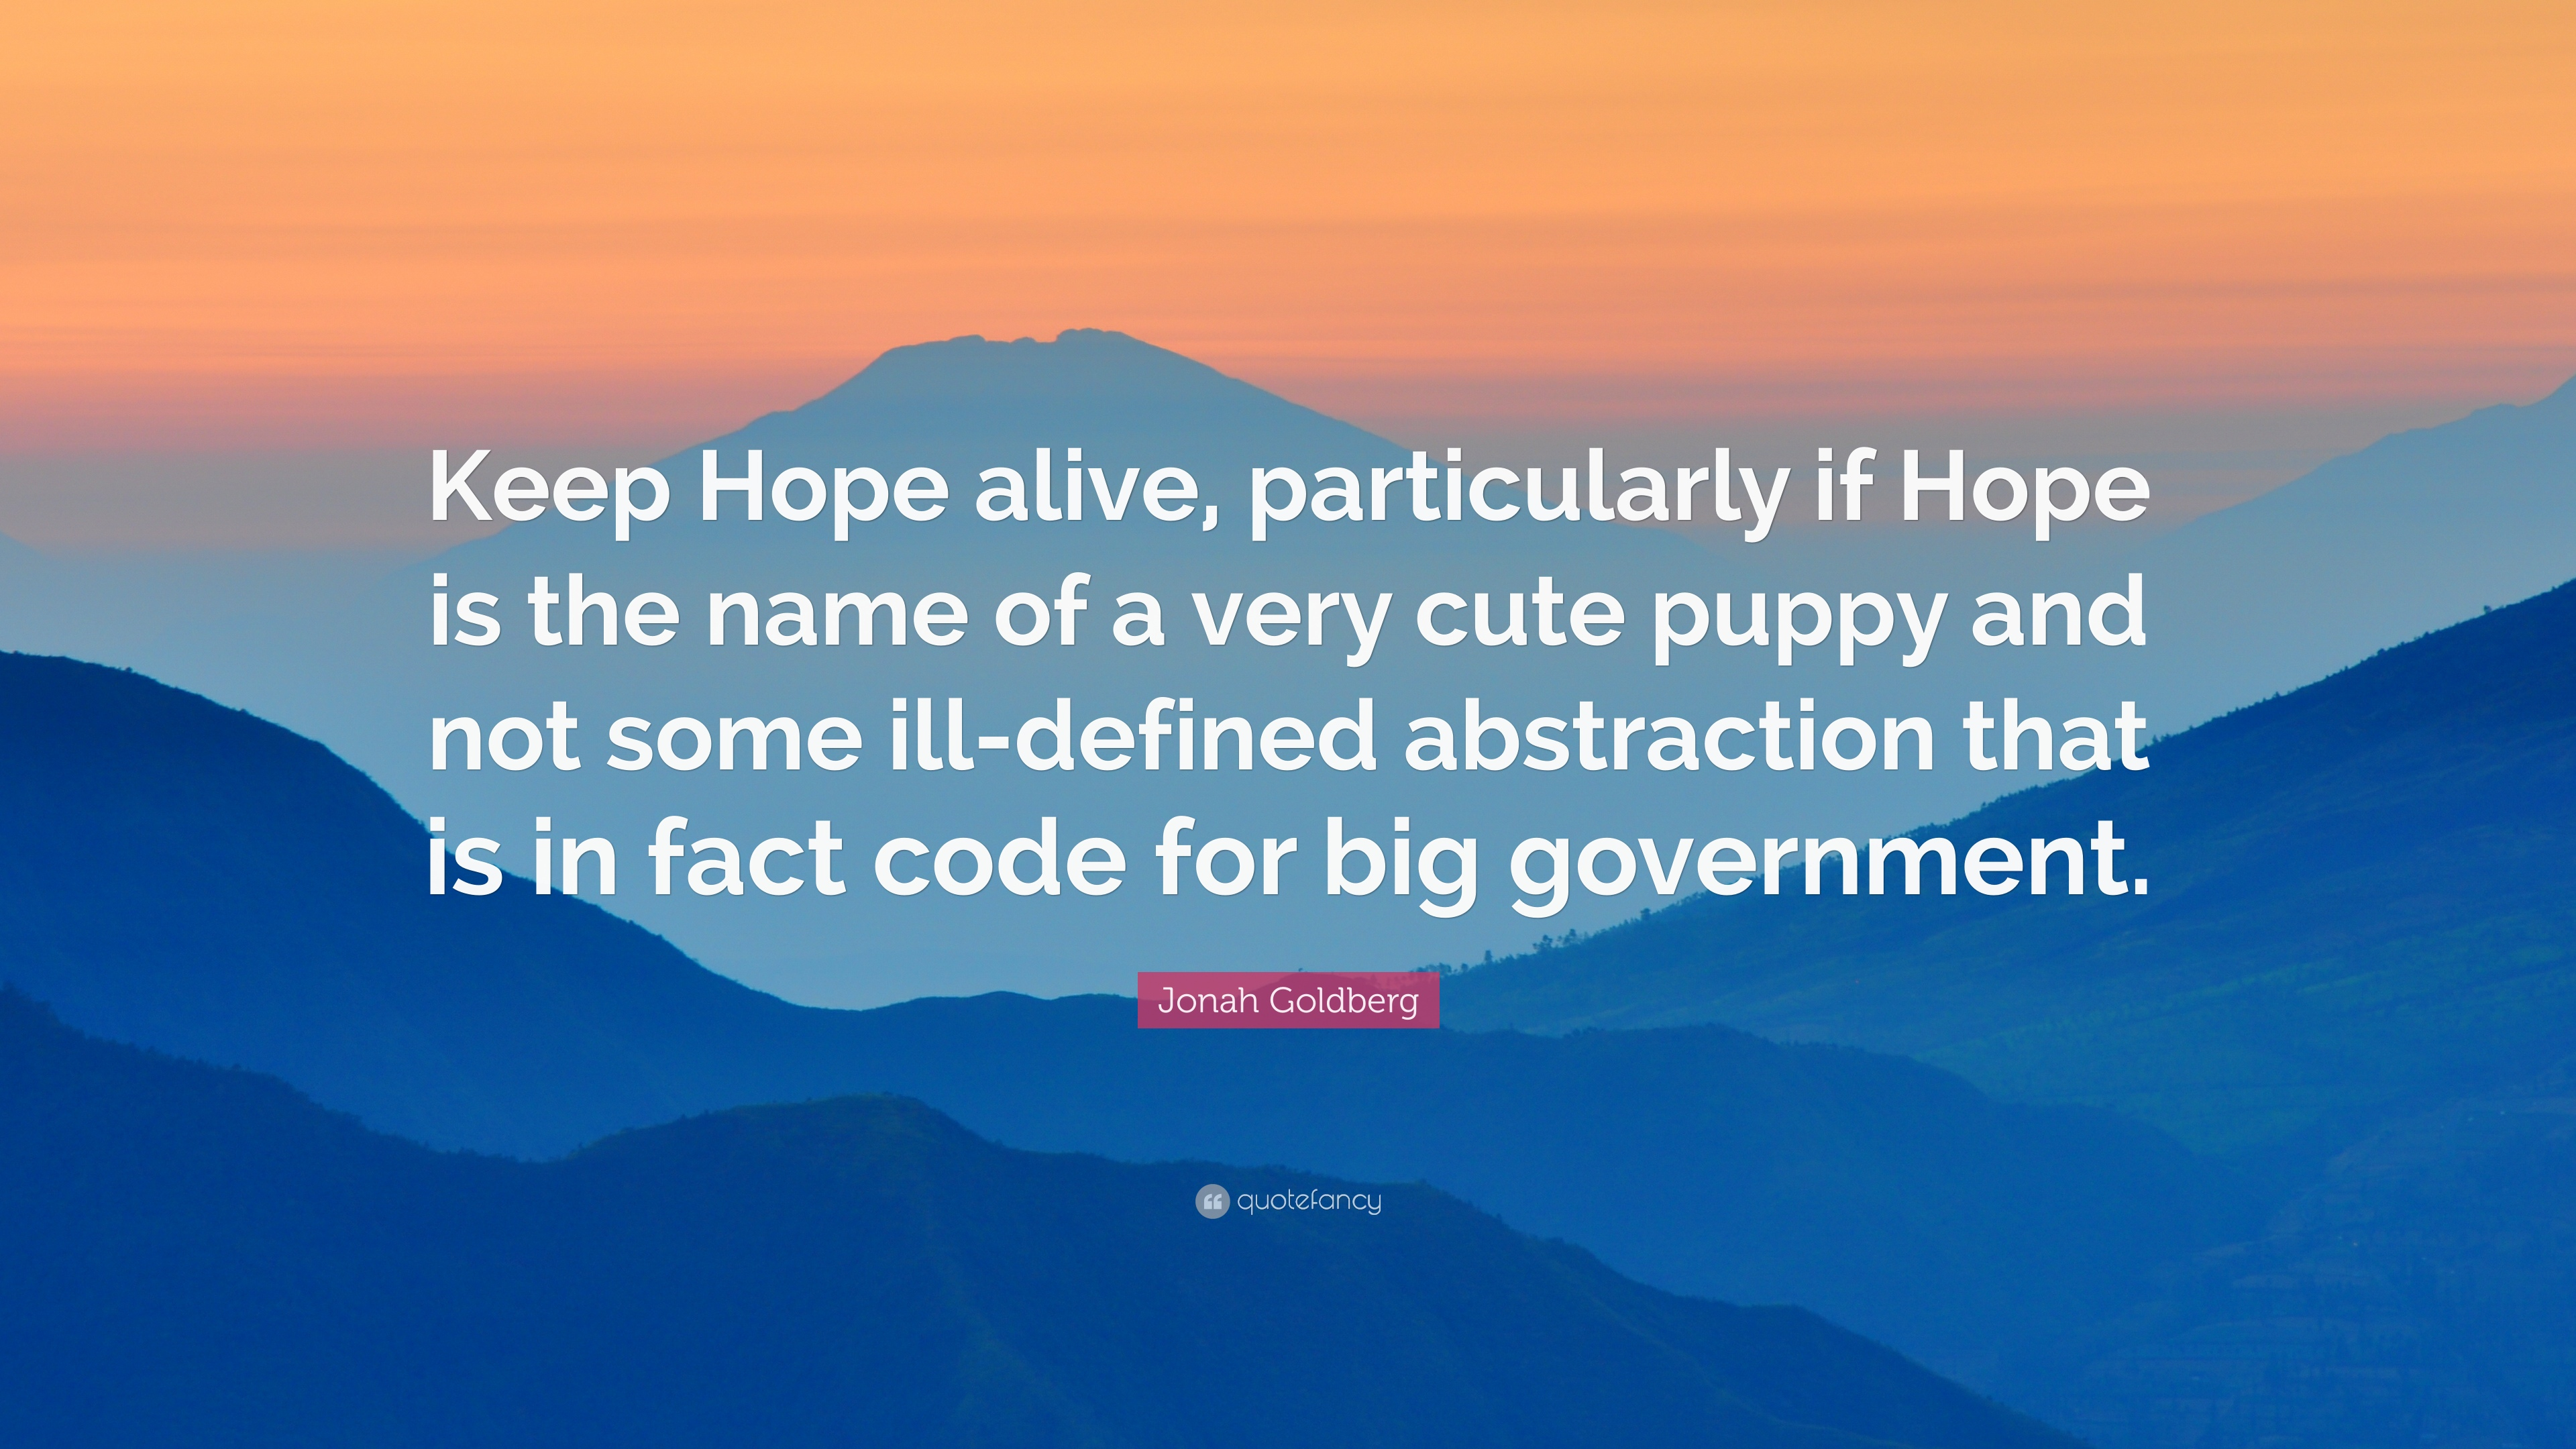 jonah goldberg quote keep hope alive particularly if hope is the name of